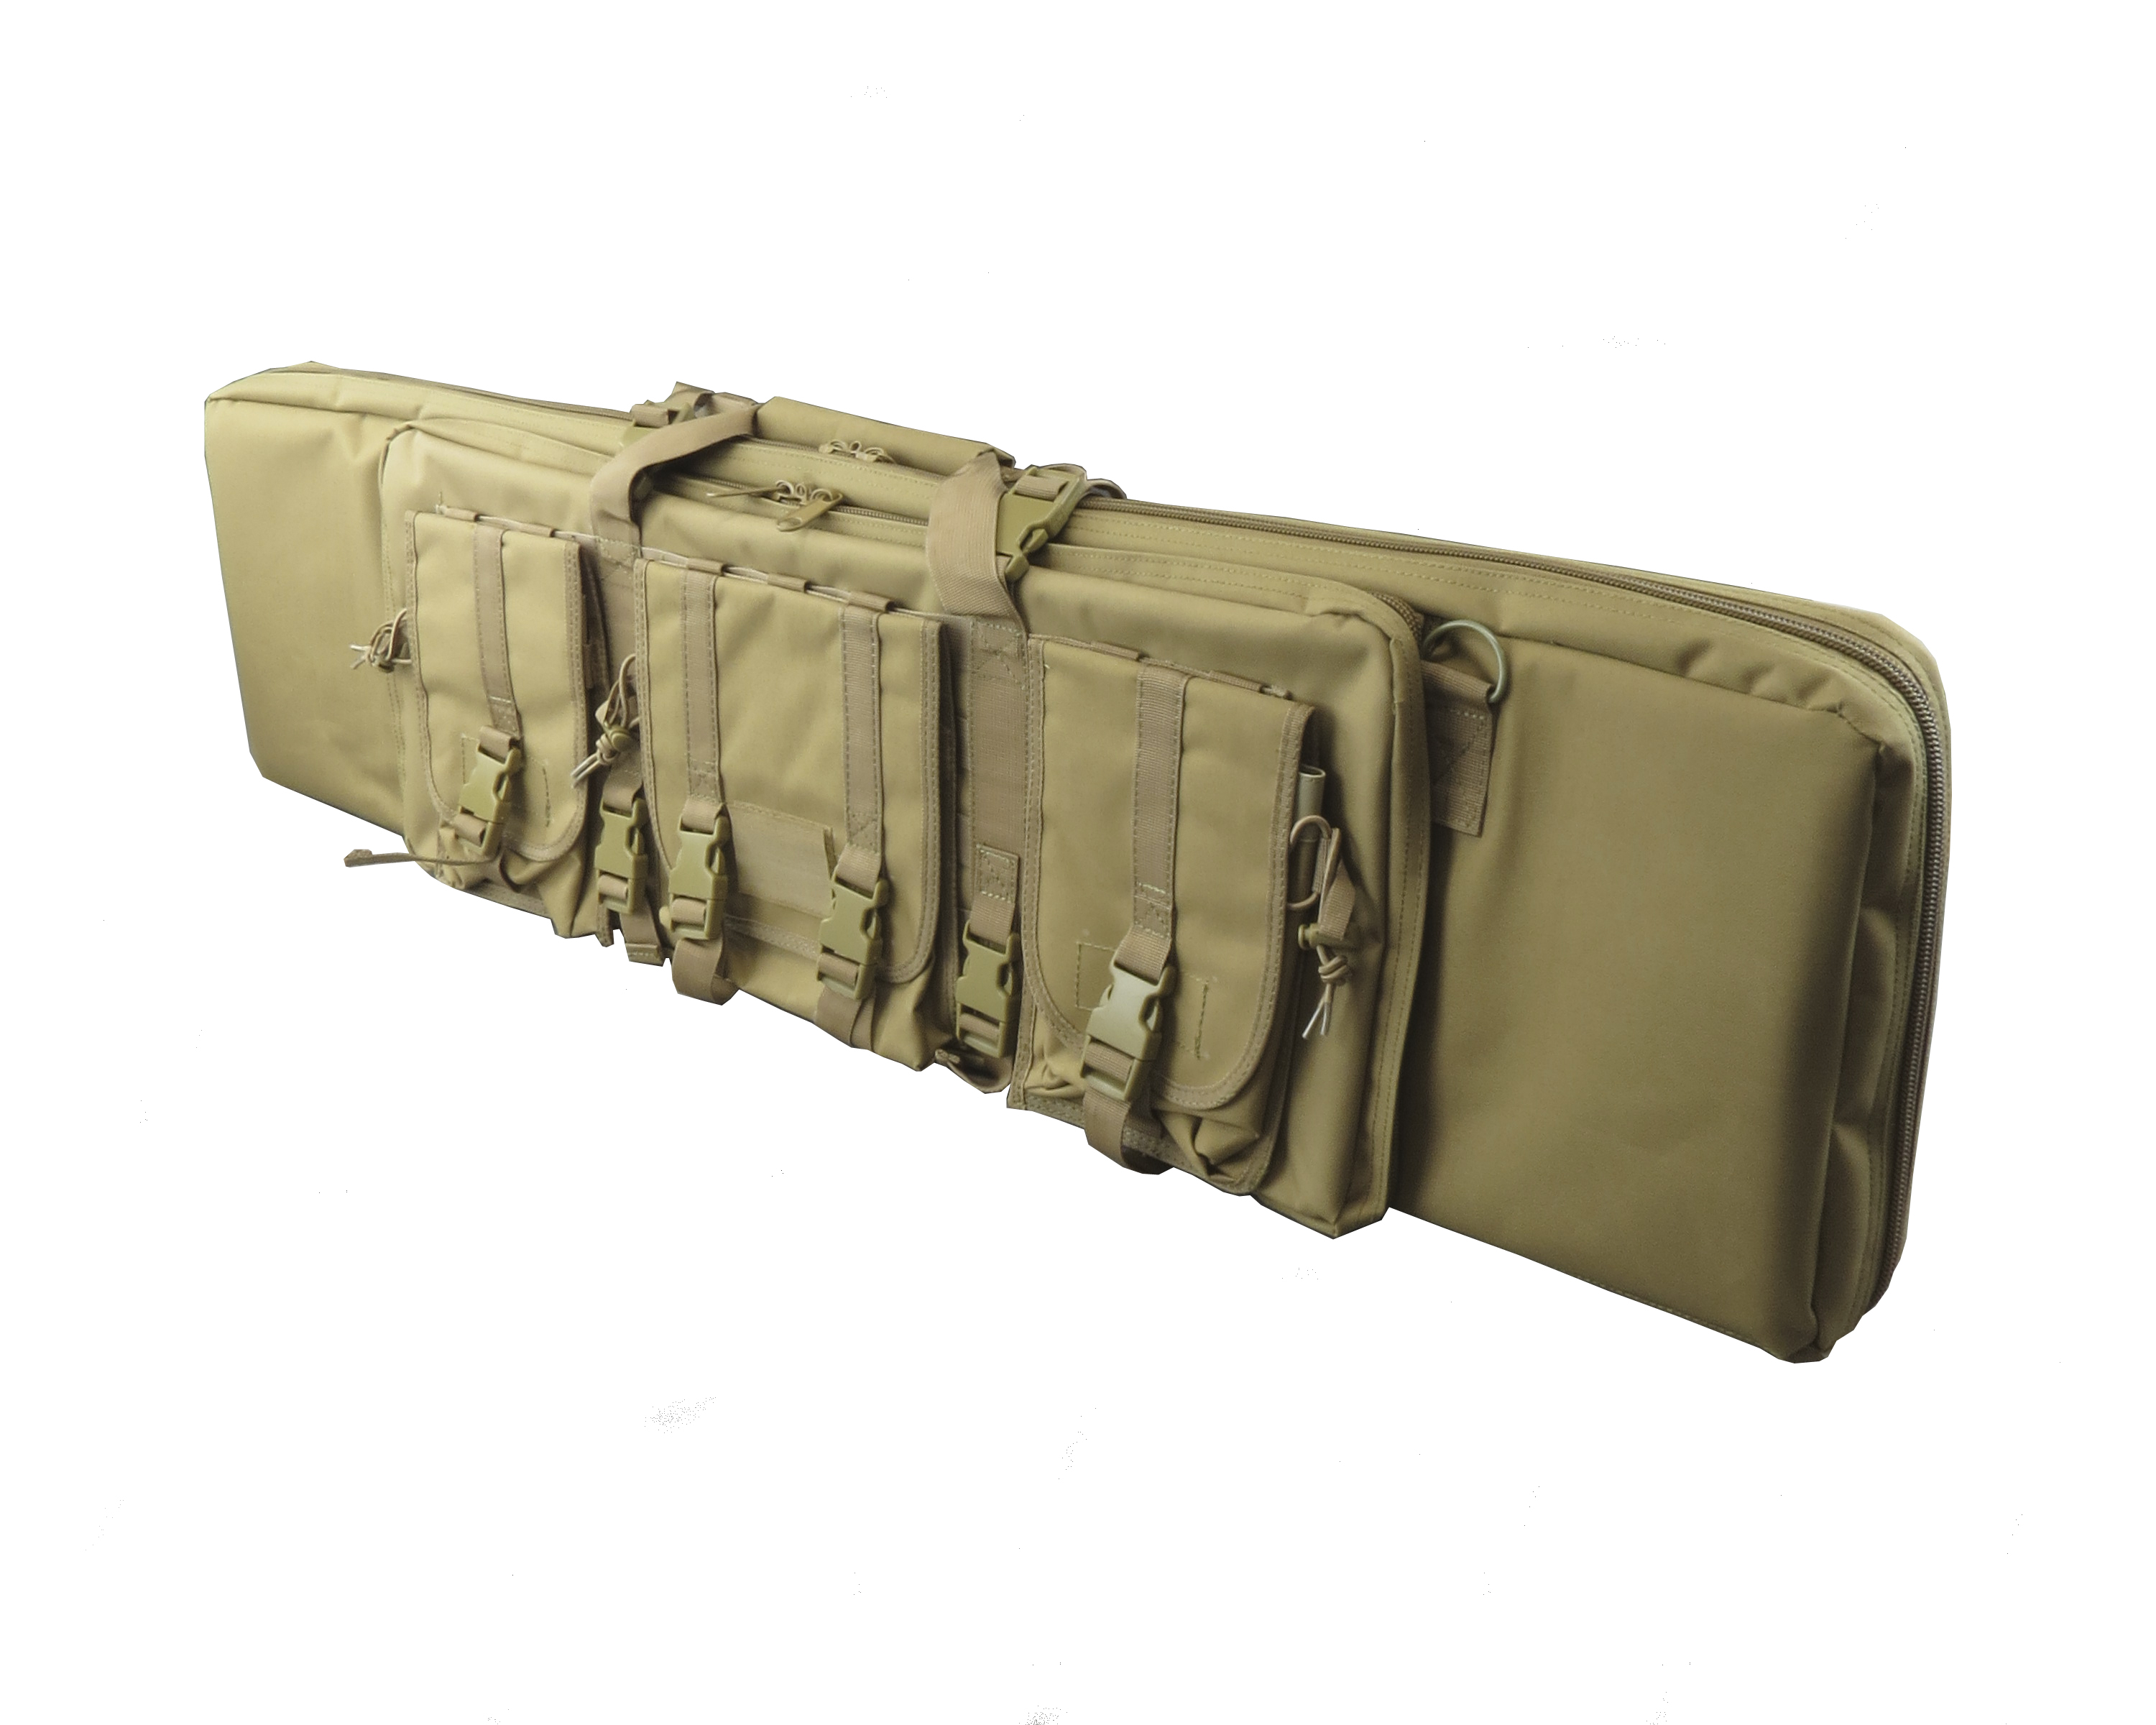 condor_42_single_rifle_case_view.jpg